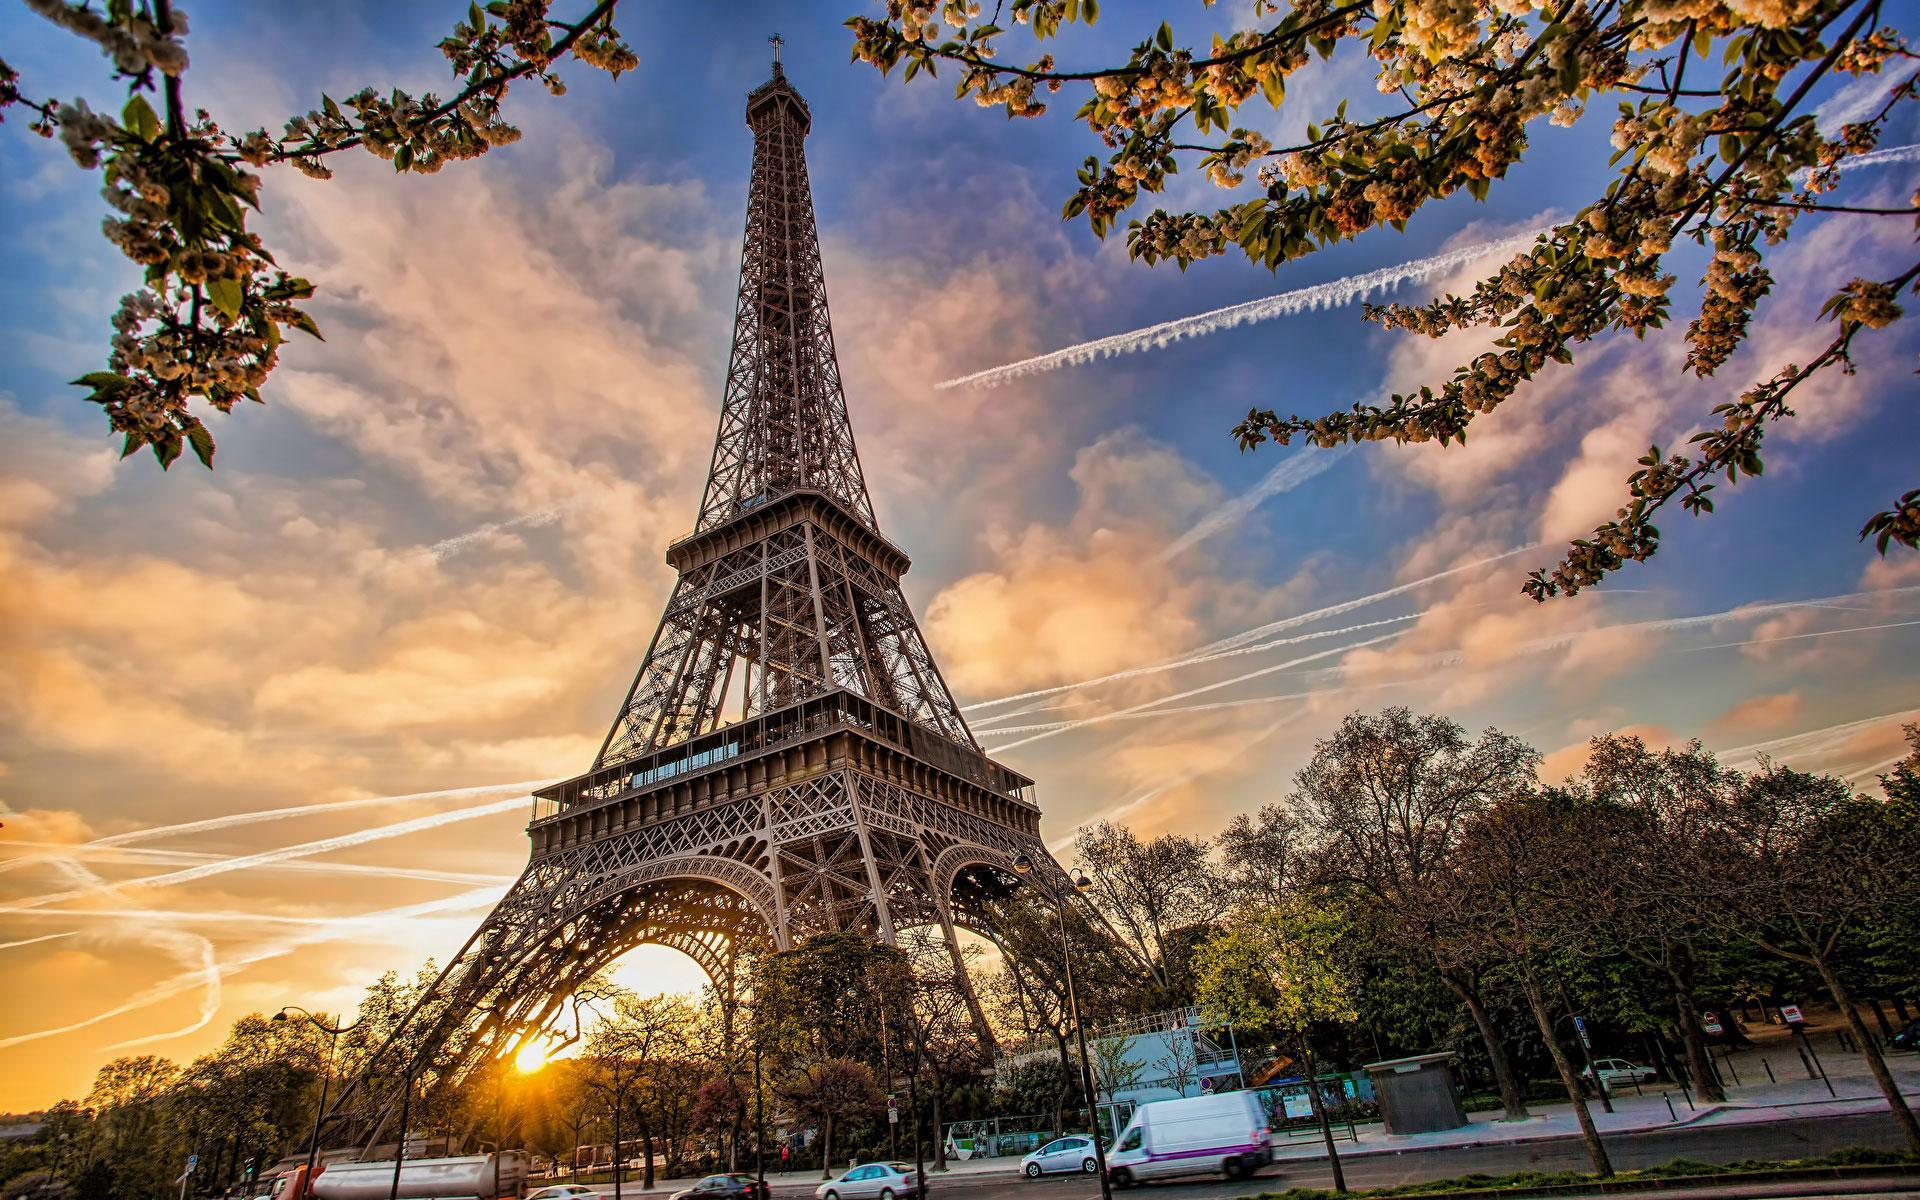 Romantica Parigi Live Wallpaper Sfondi Animati For Android Apk